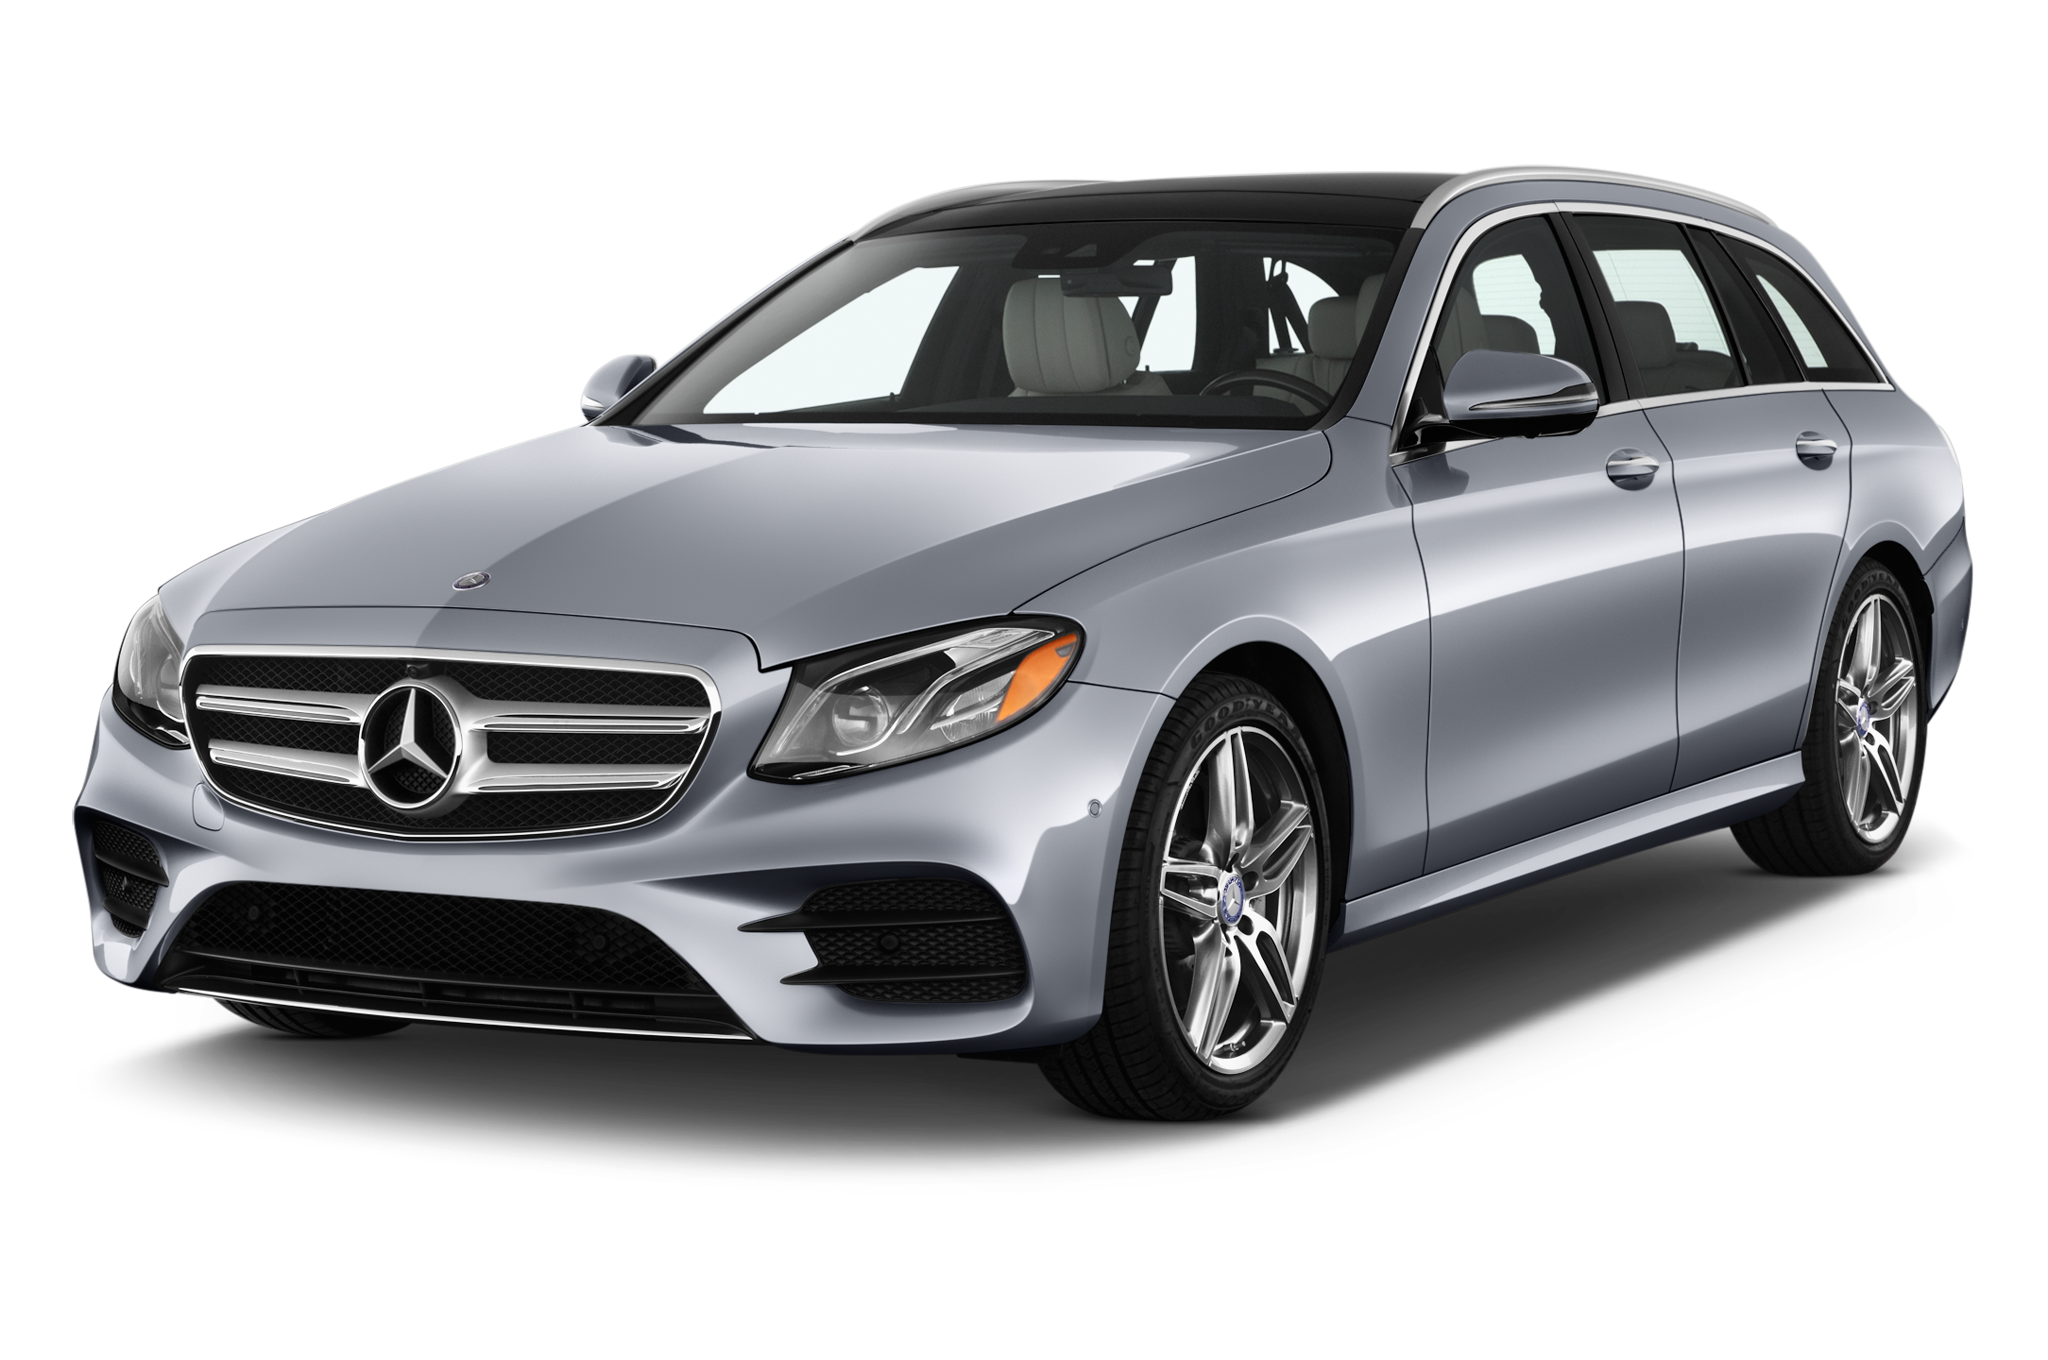 2018 mercedes benz e400 4matic coupe first drive review automobile magazine. Black Bedroom Furniture Sets. Home Design Ideas